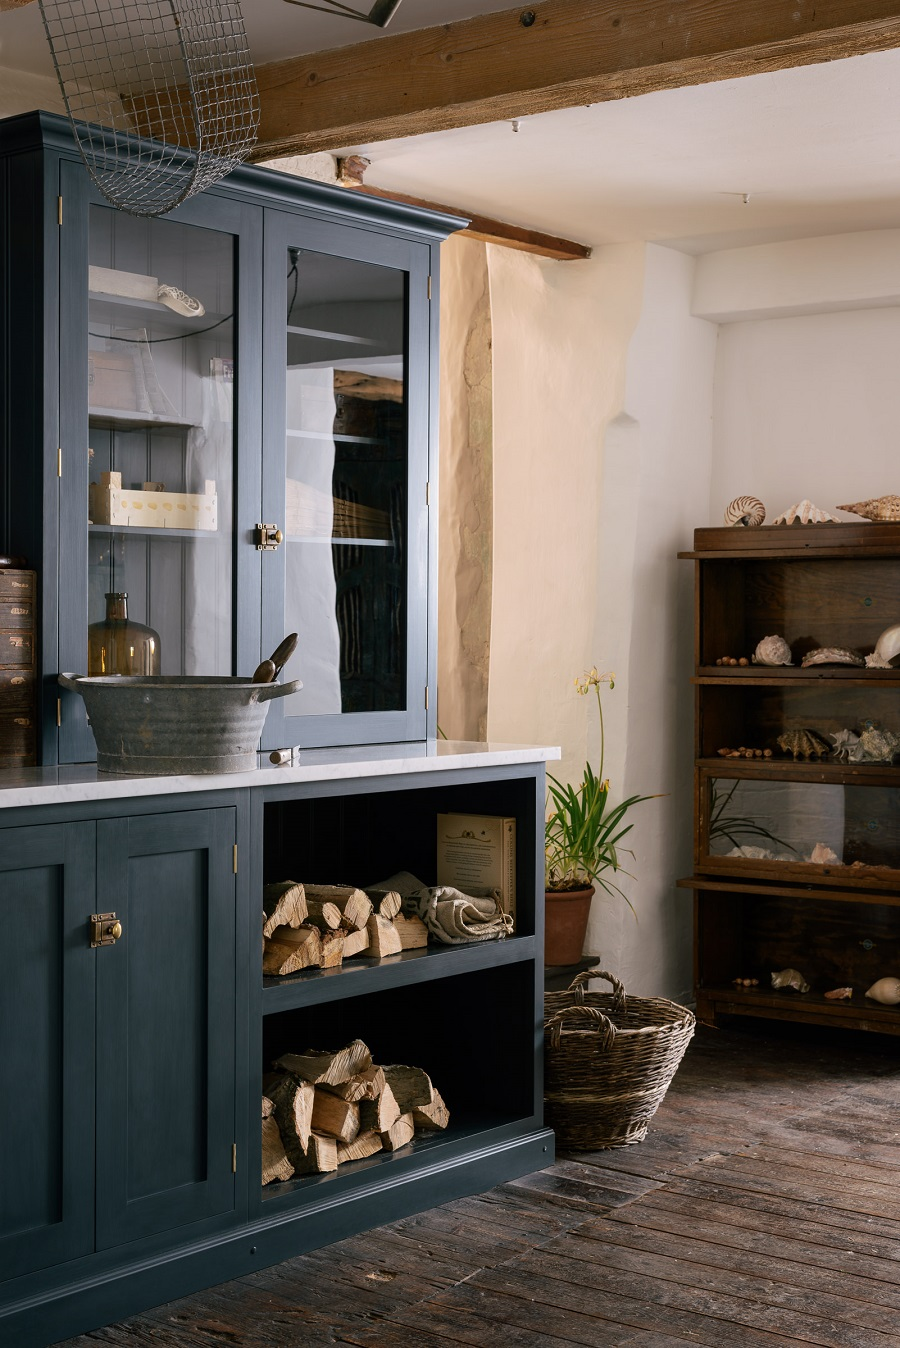 The utility room of my dreams